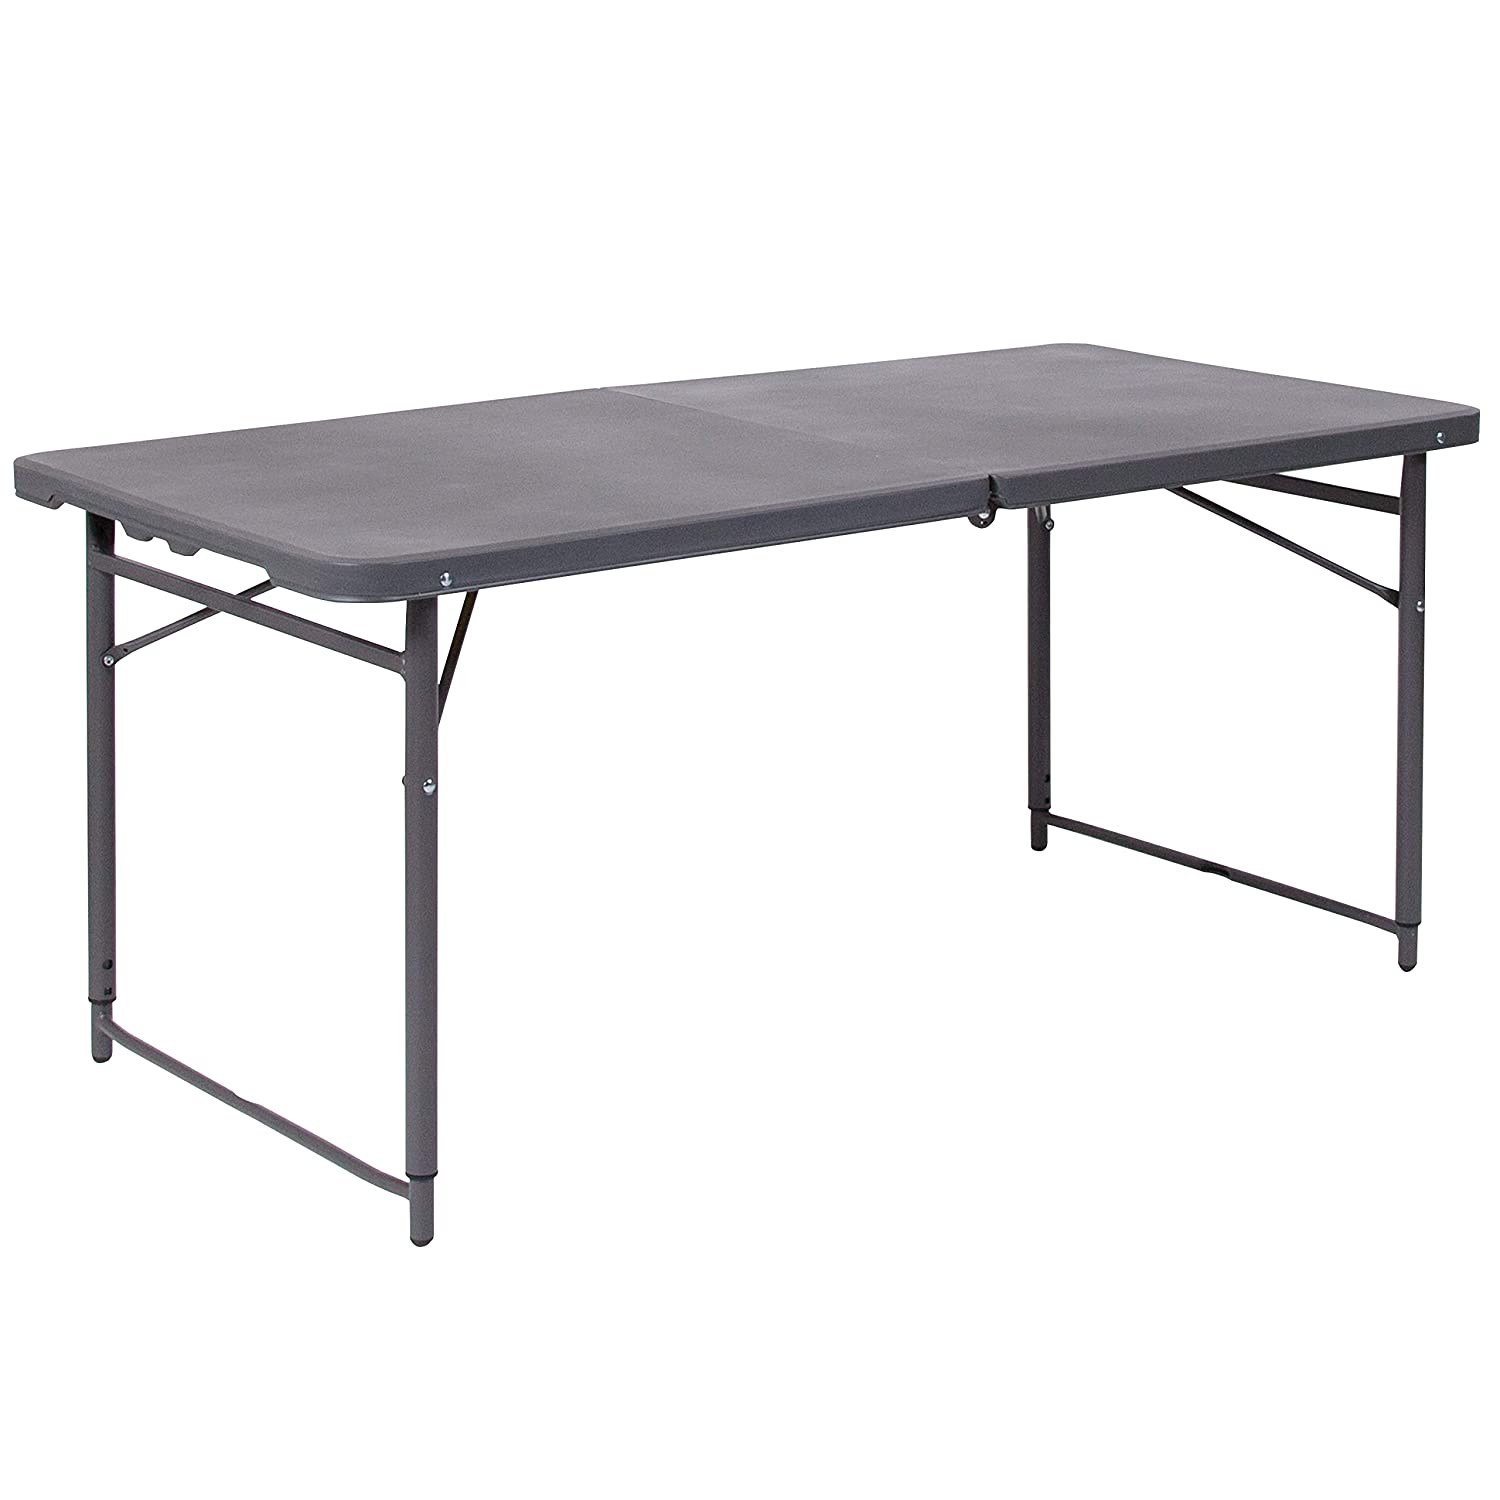 Flash Furniture 23.5''W x 48.25''L Height Adjustable Bi-Fold Dark Gray Plastic Folding Table with Carrying Handle